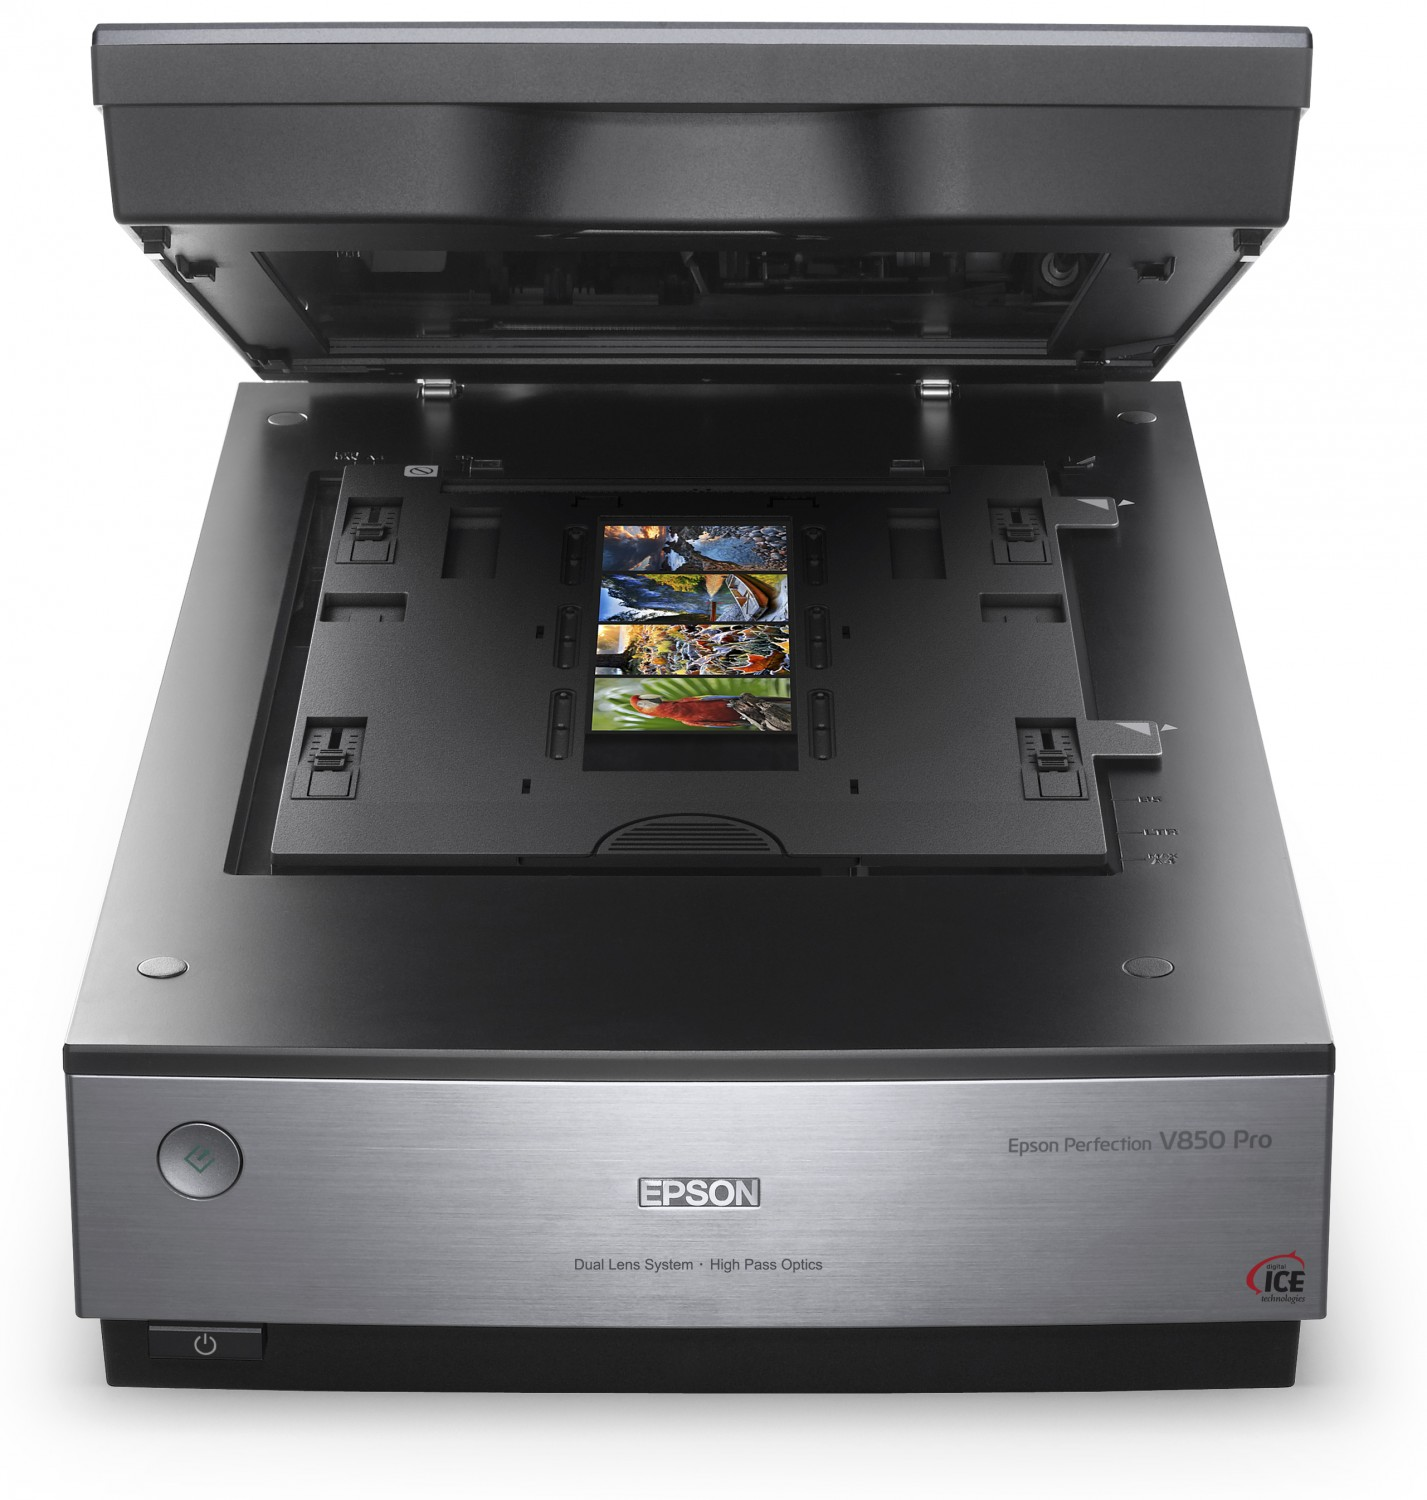 EPSON Perfection V850